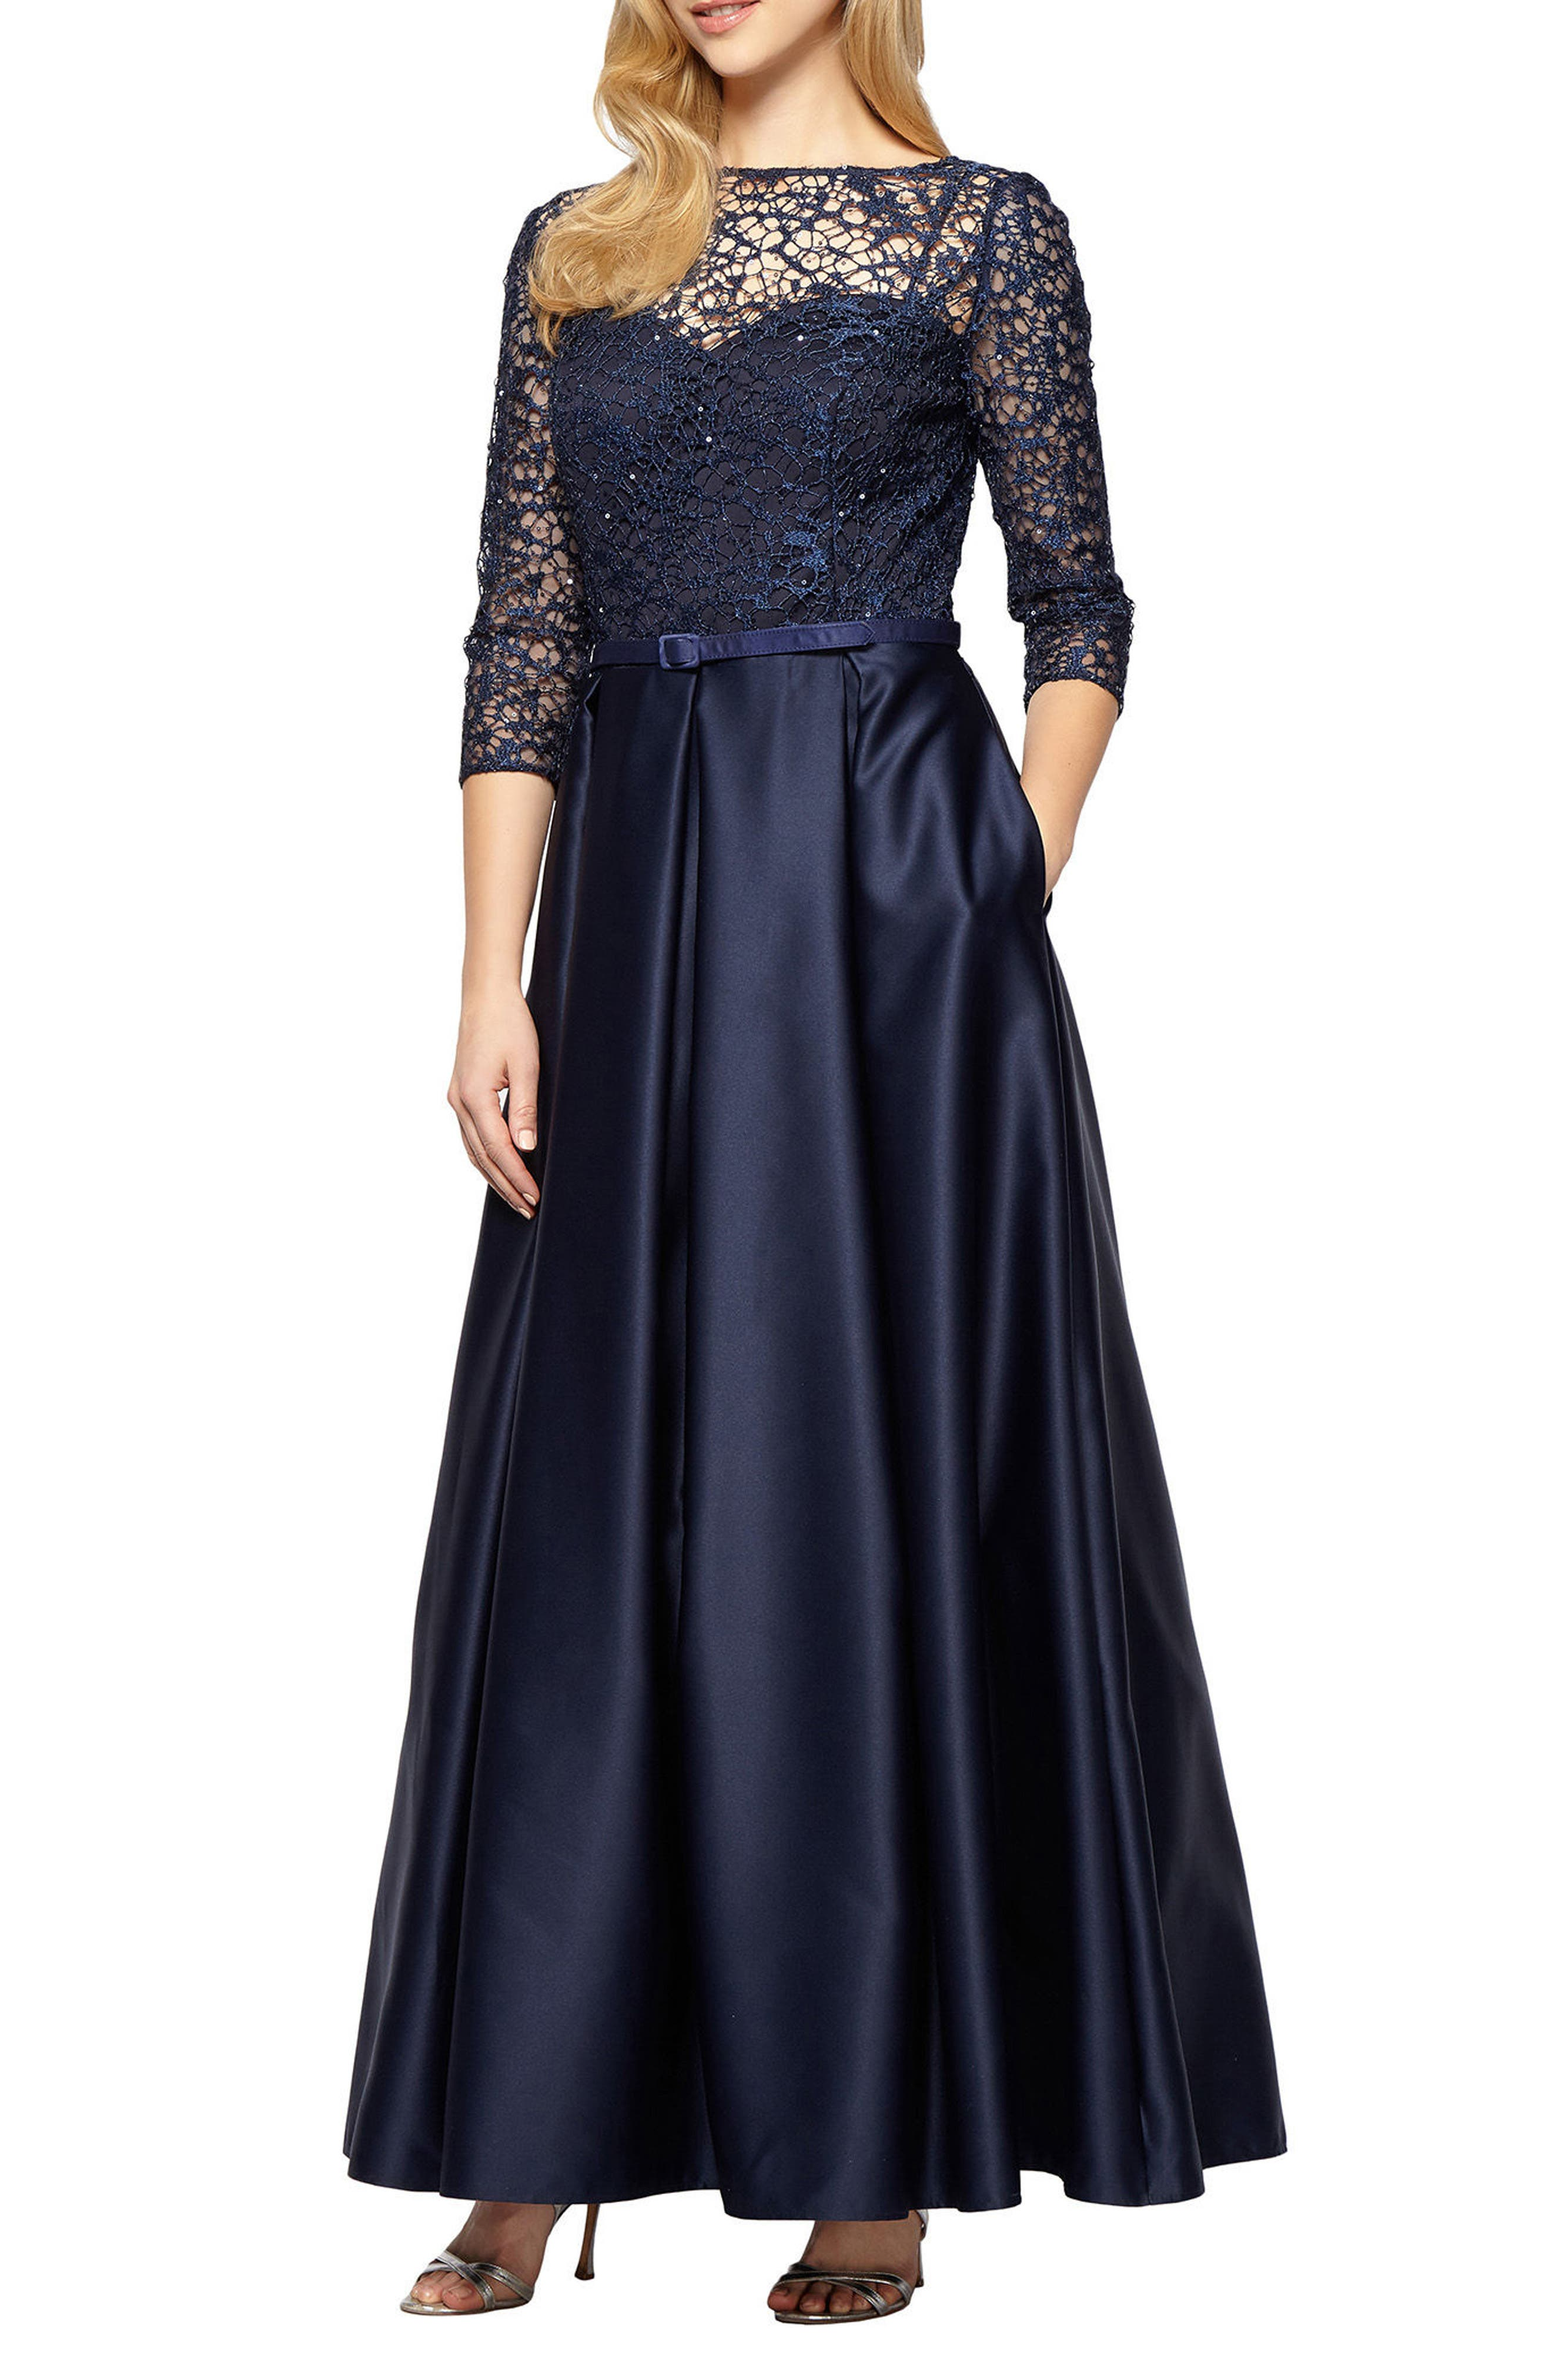 Alex Evenings Embellished Lace & Satin Ballgown